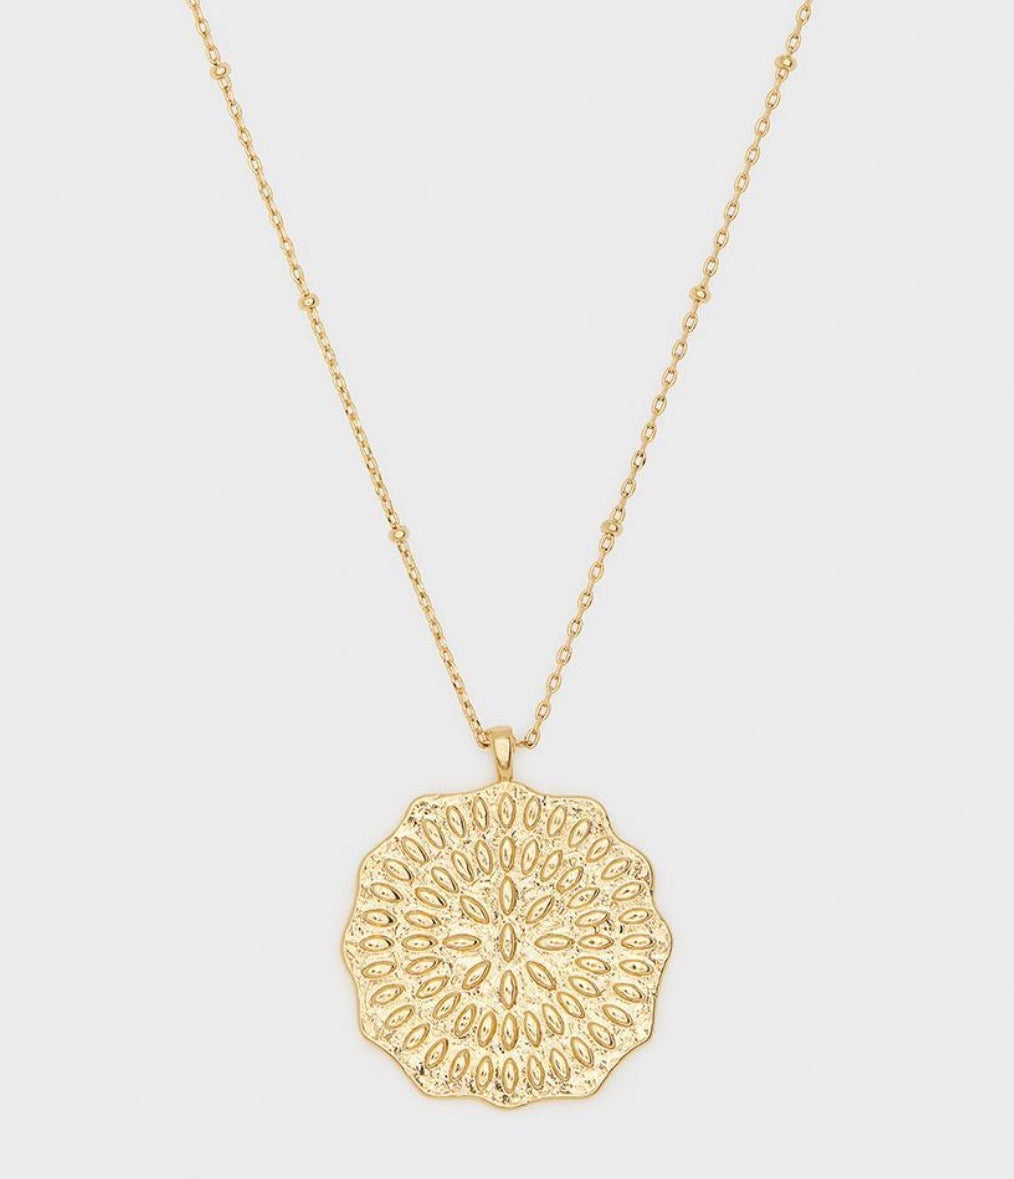 Gorjana - Mosaic Coin Necklace